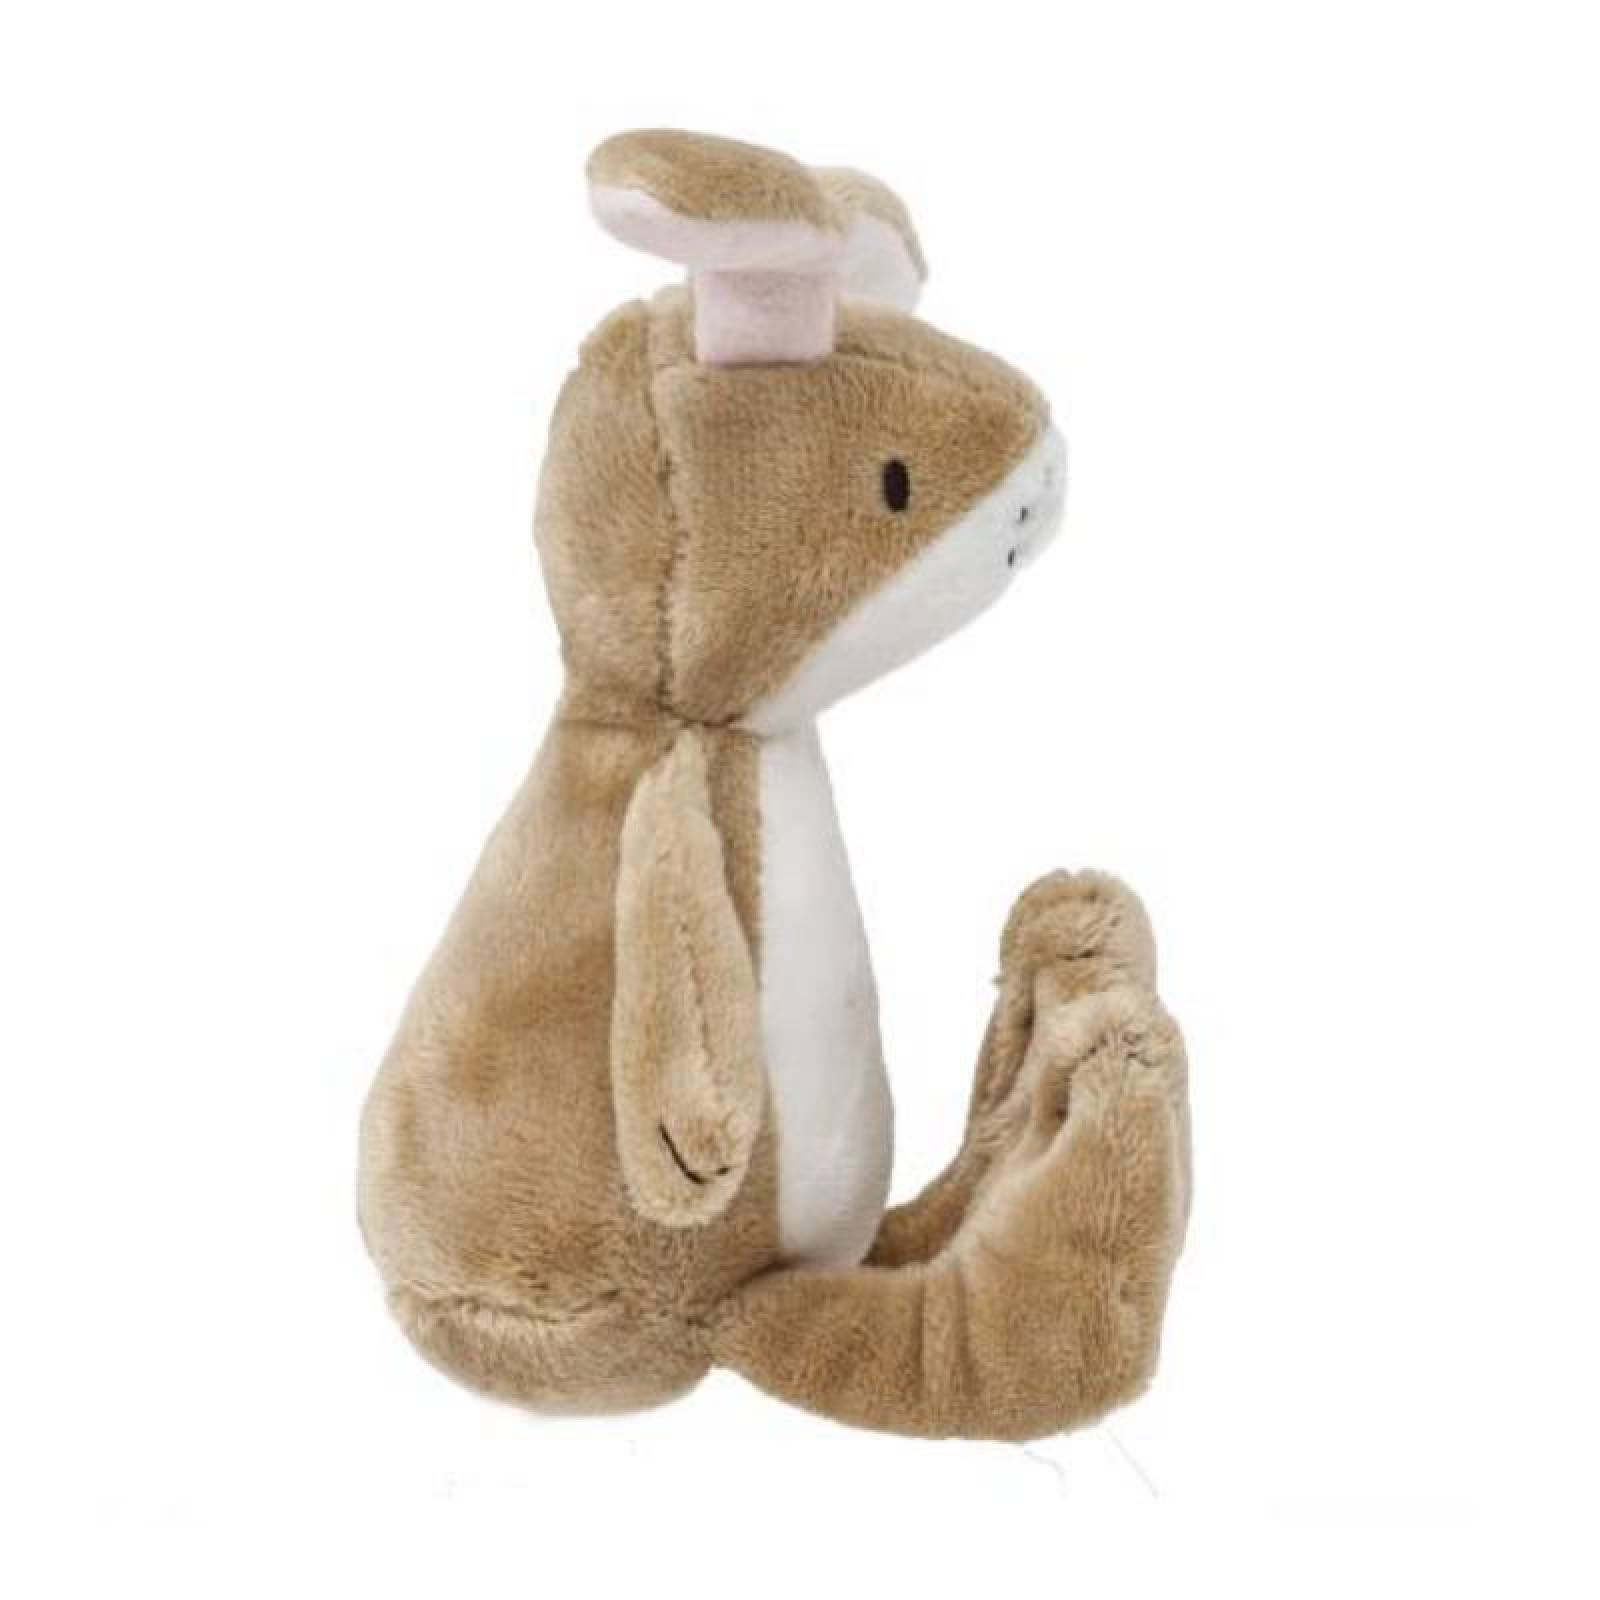 Guess How Much I Love You Little Hare Rattle Soft Toy 0+ thumbnails